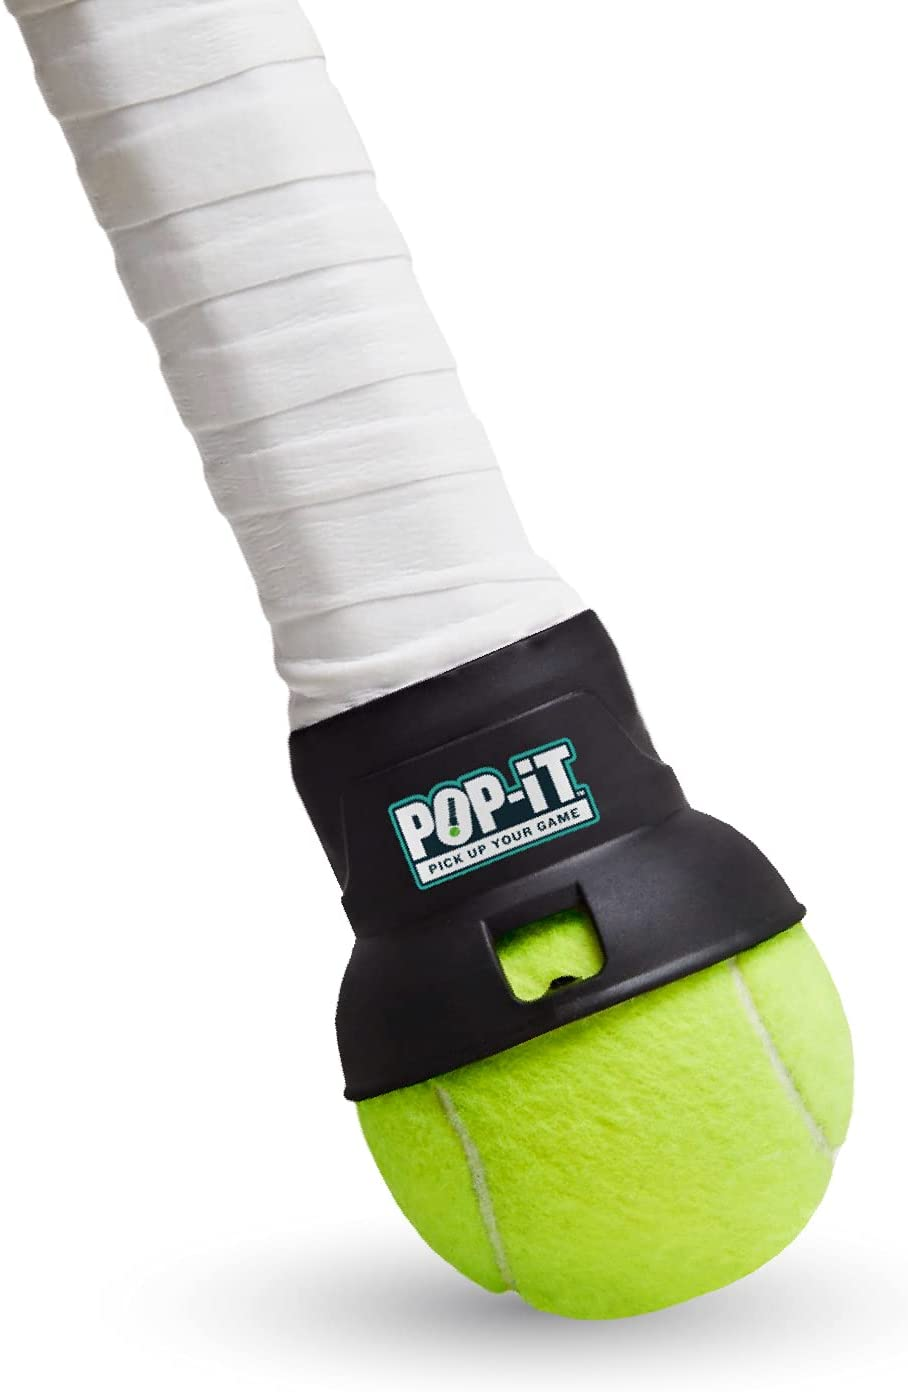 POP-iT Easy Tennis Ball Pick Dealing full price reduction Equipment Gifts Nashville-Davidson Mall Accessory Up